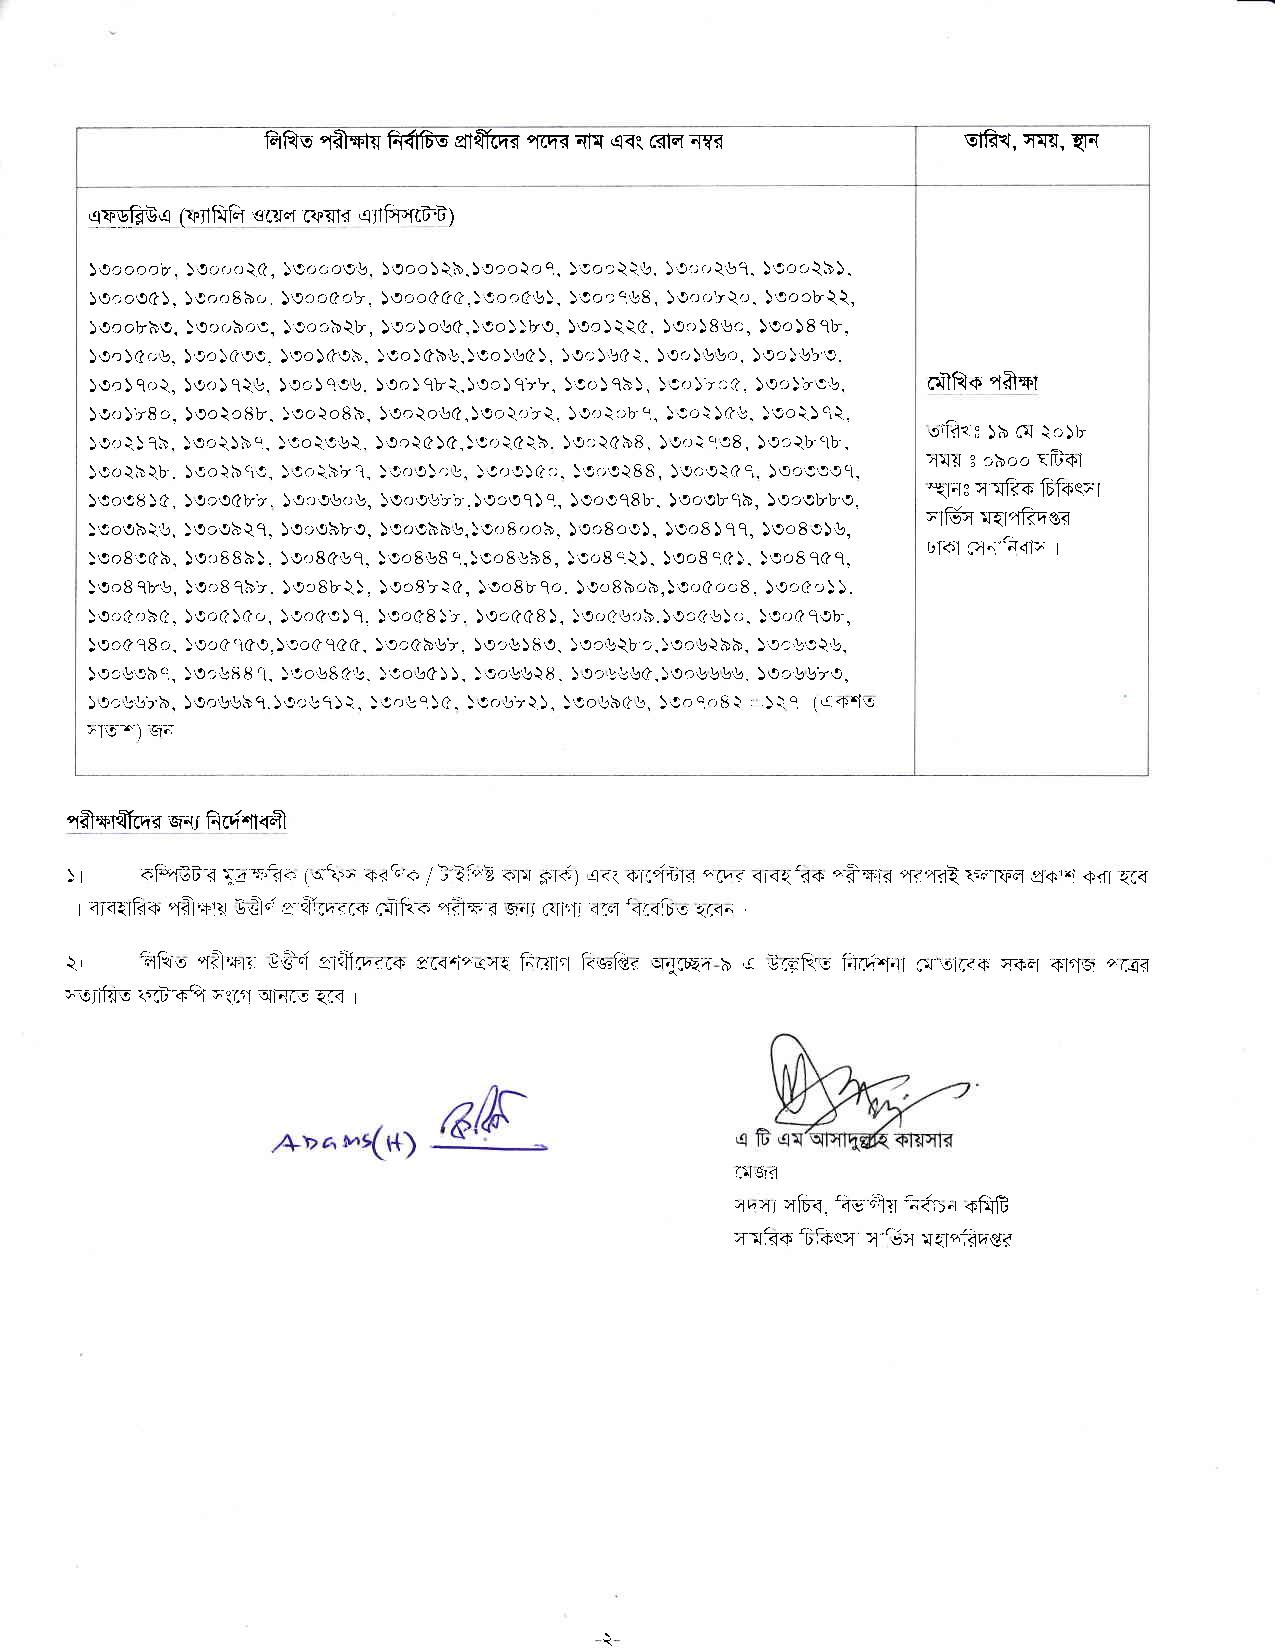 Ministry of Defence (MOD) Exam Result